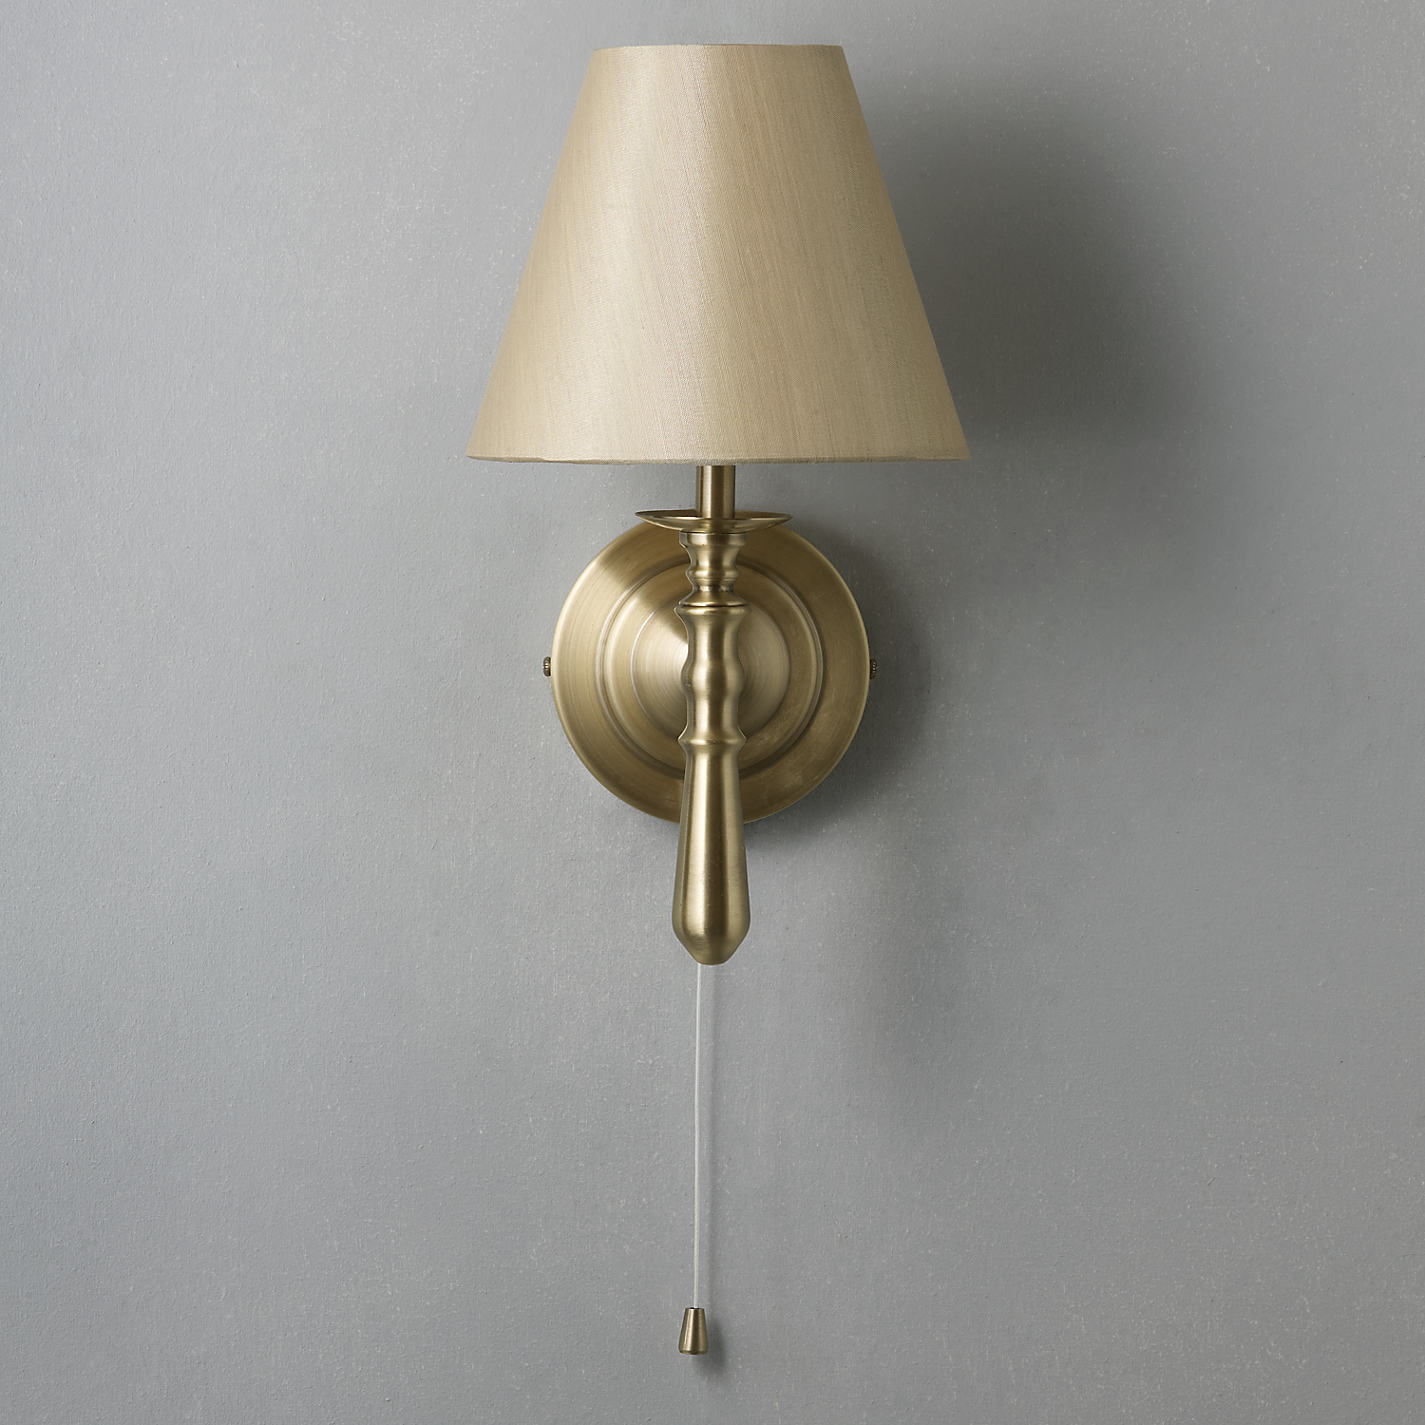 Buy john lewis sloane wall light john lewis buy john lewis sloane wall light online at johnlewis mozeypictures Images